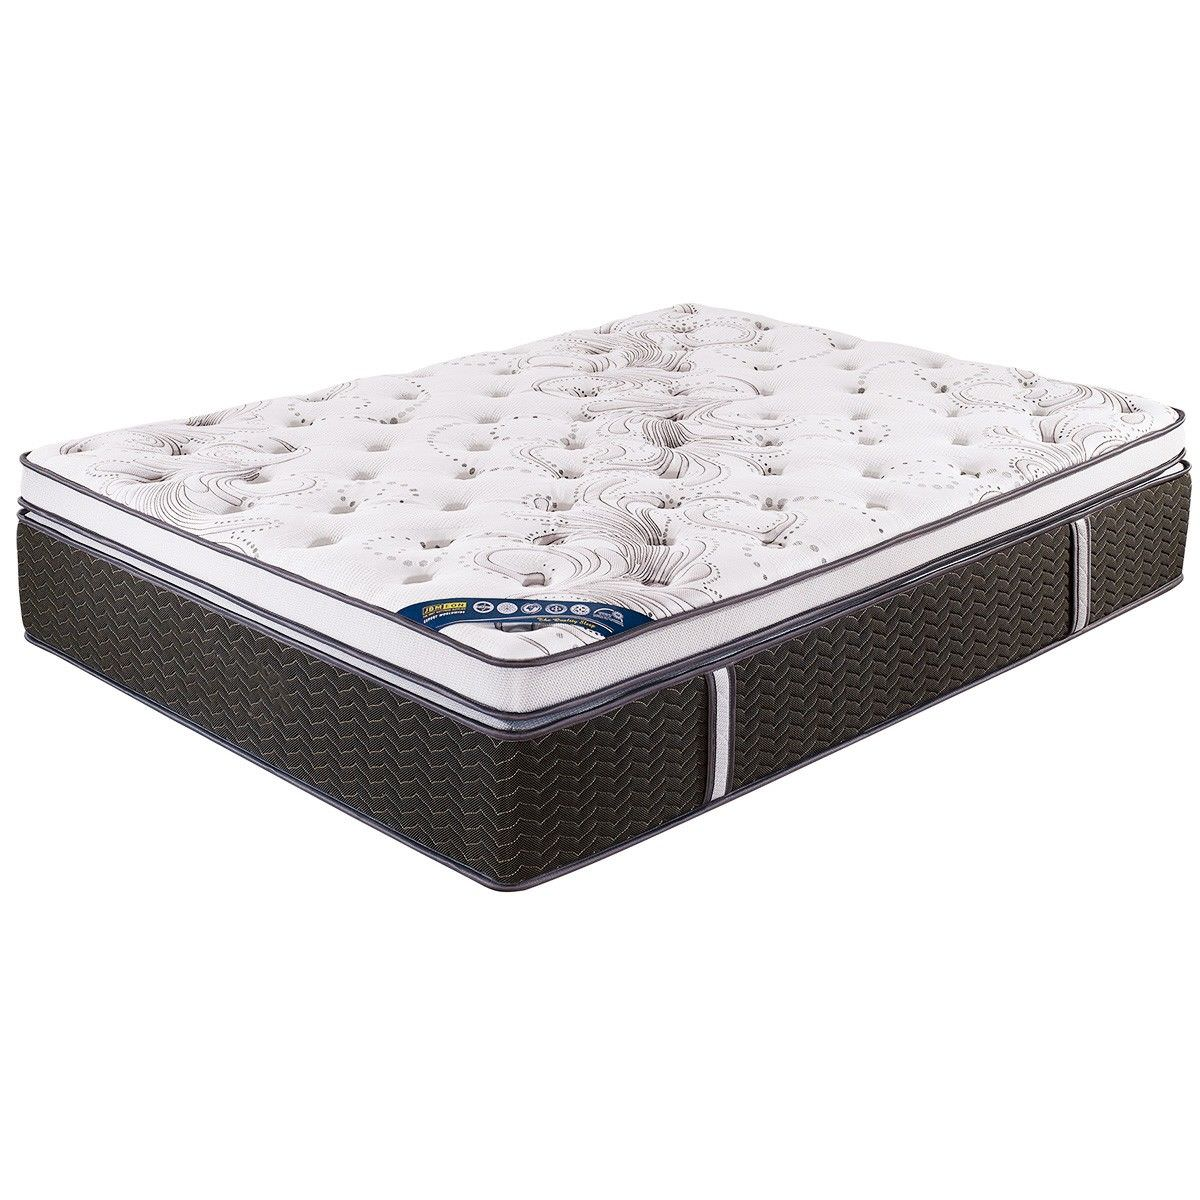 Evedon Medium Firm Pocket Spring Mattress with Memory Foam Pillow Top, King